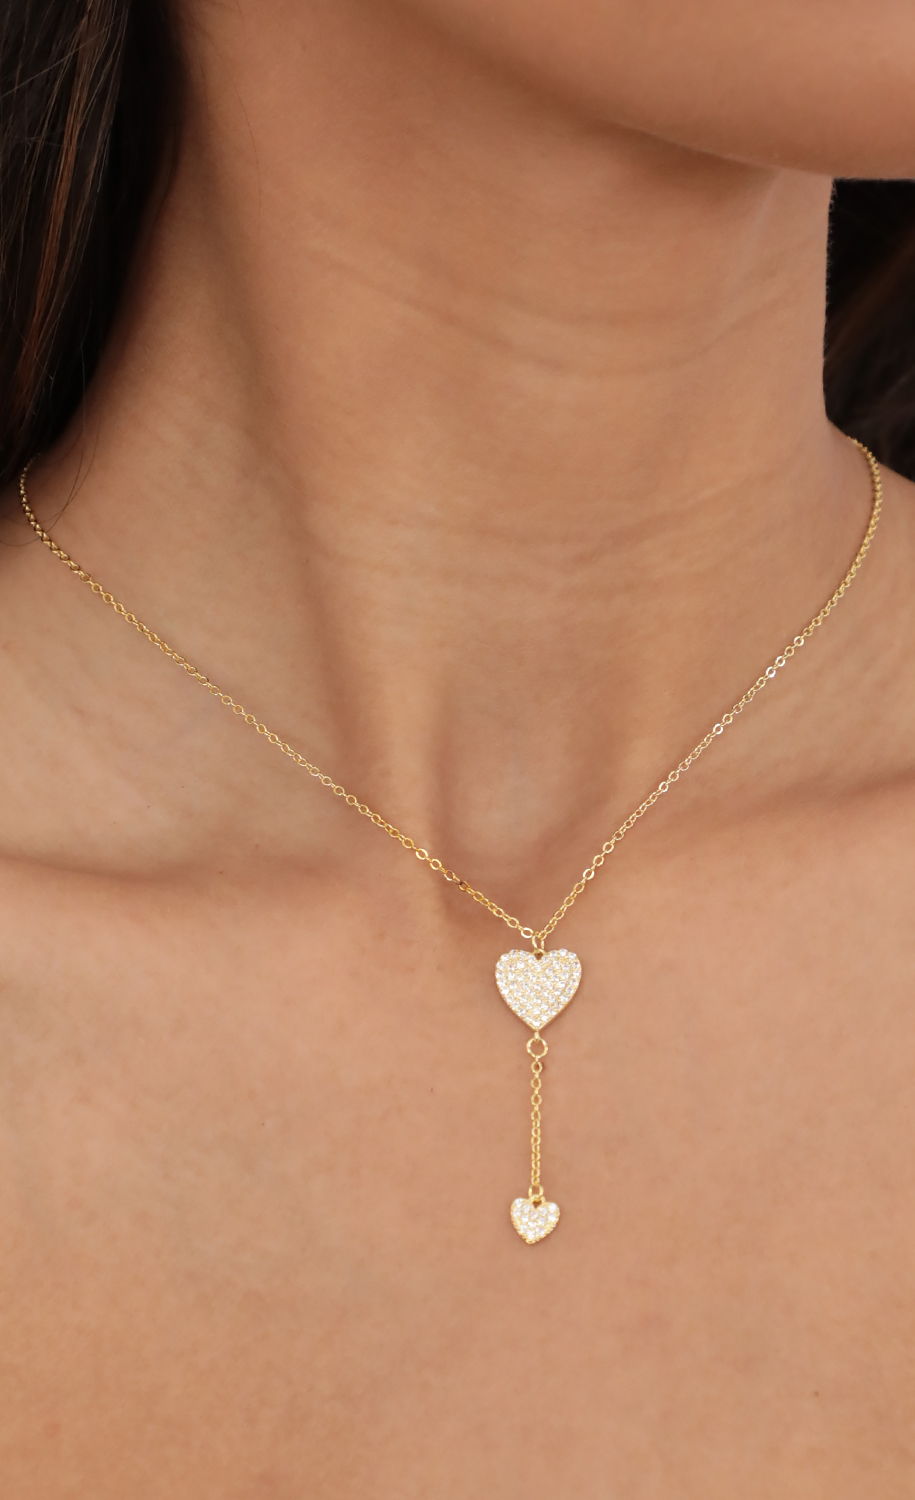 Suspended Pave Hearts Mini Lariat